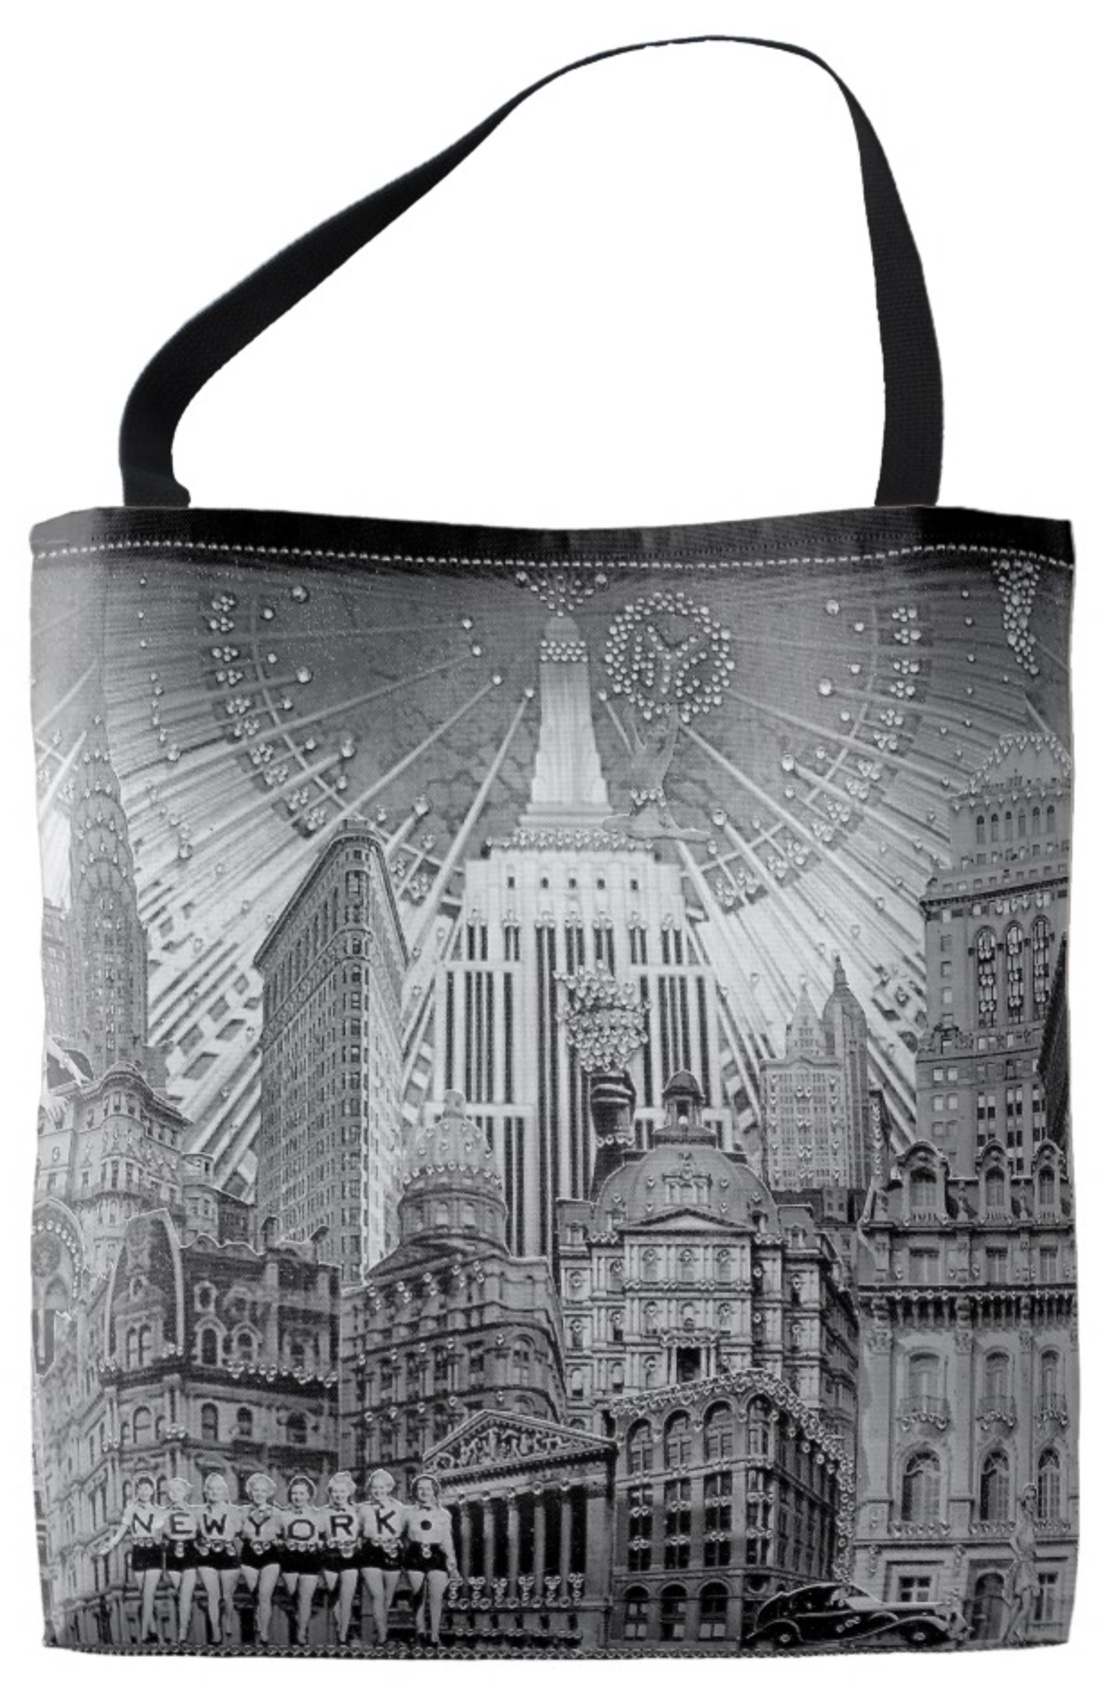 Add a little Style and Glamour to your next shopping trip with the  New York Dolls /Angelic New York earth-friendly Tote Bag!